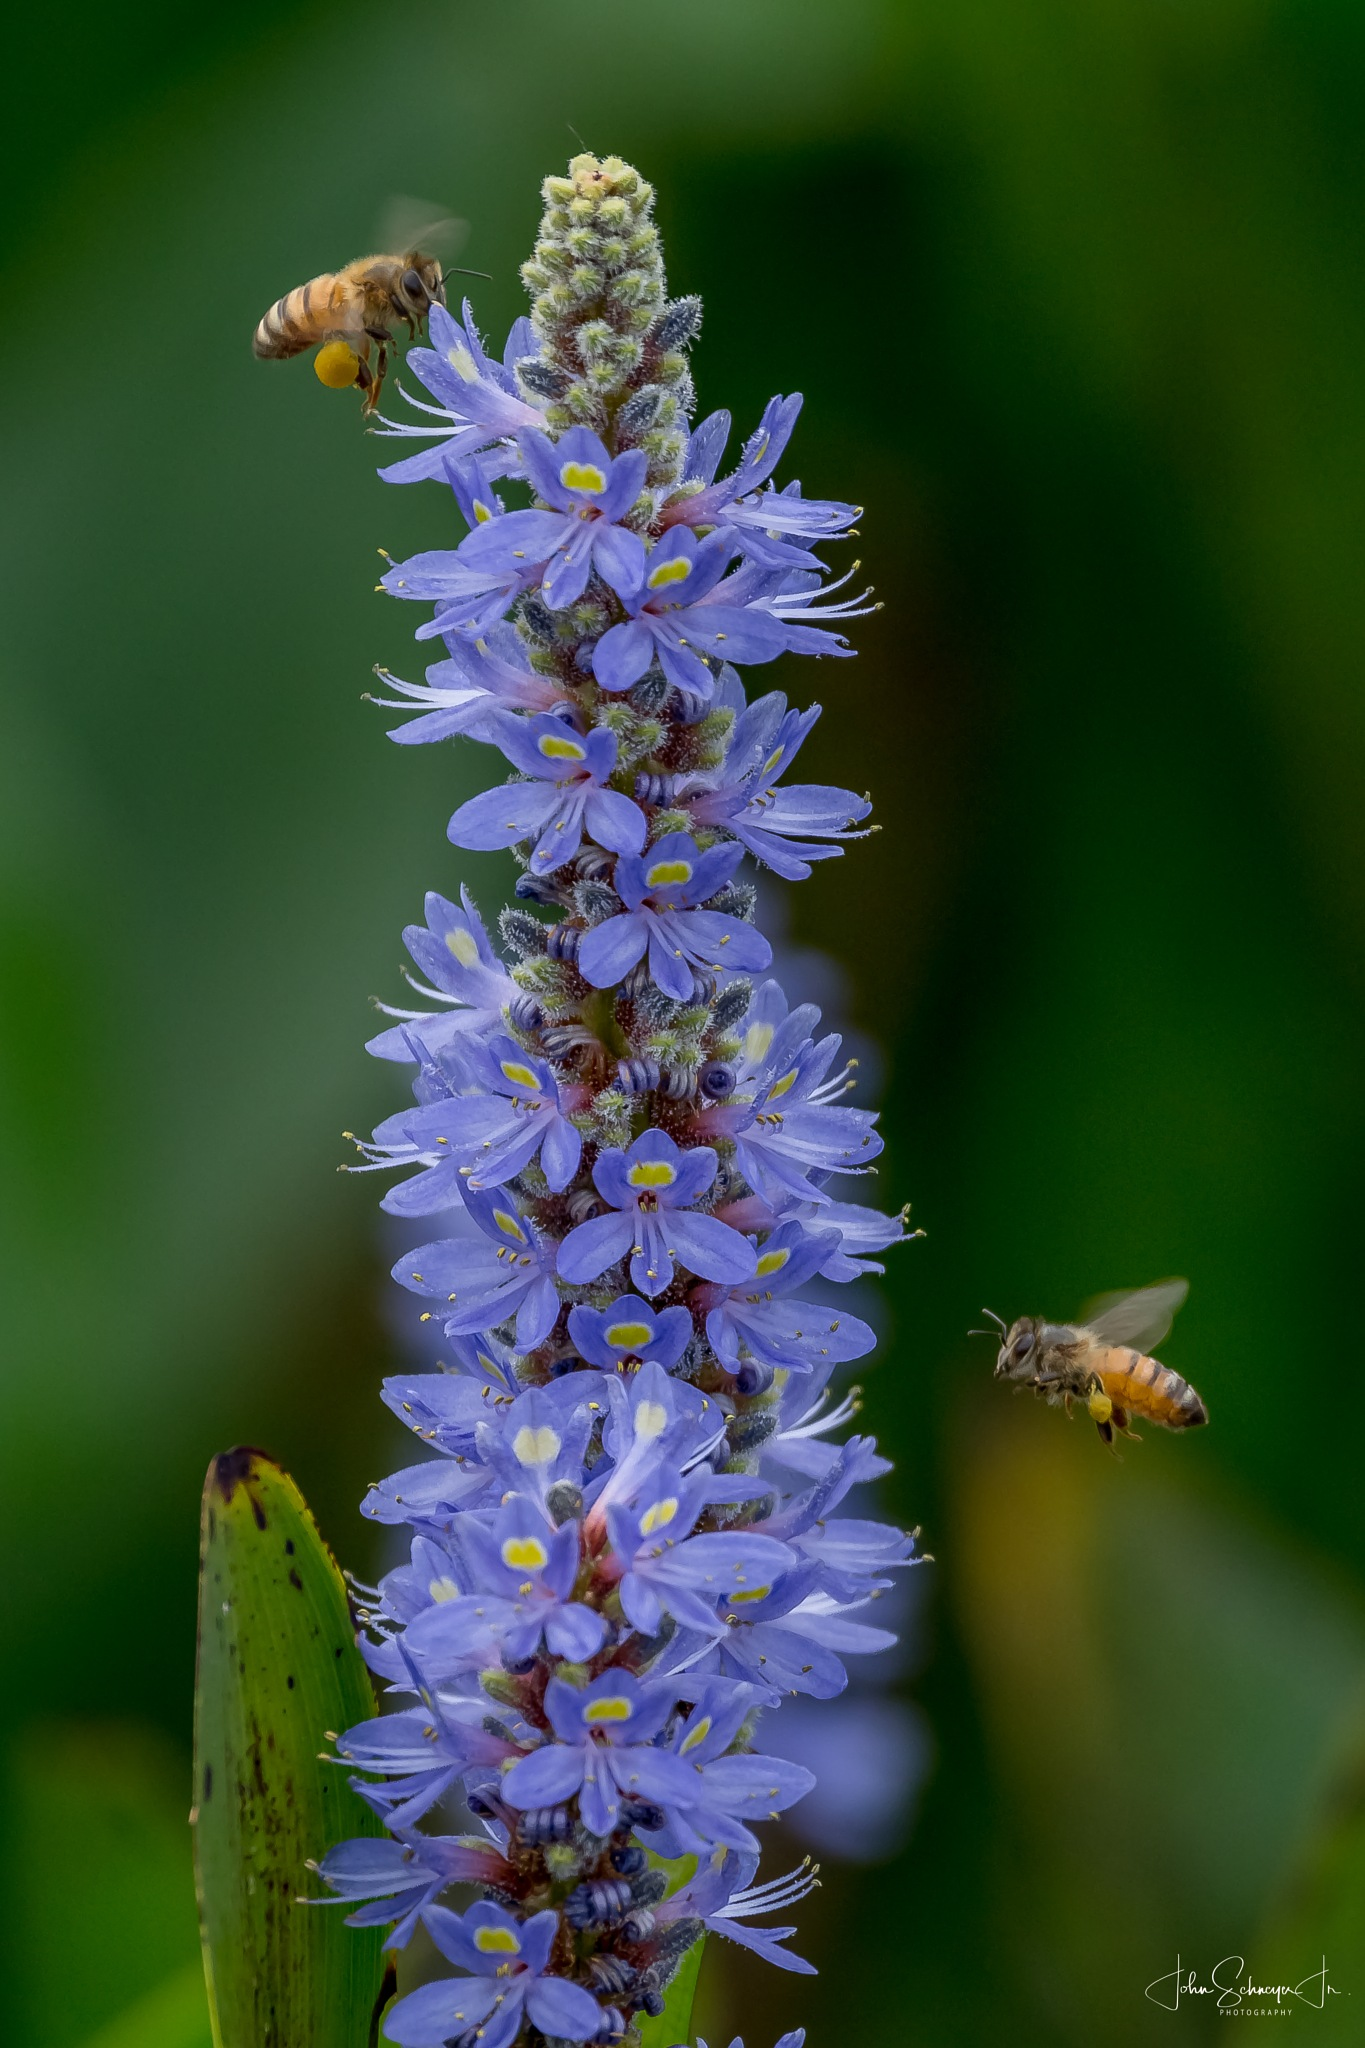 Buzzing Around by John Schneyer